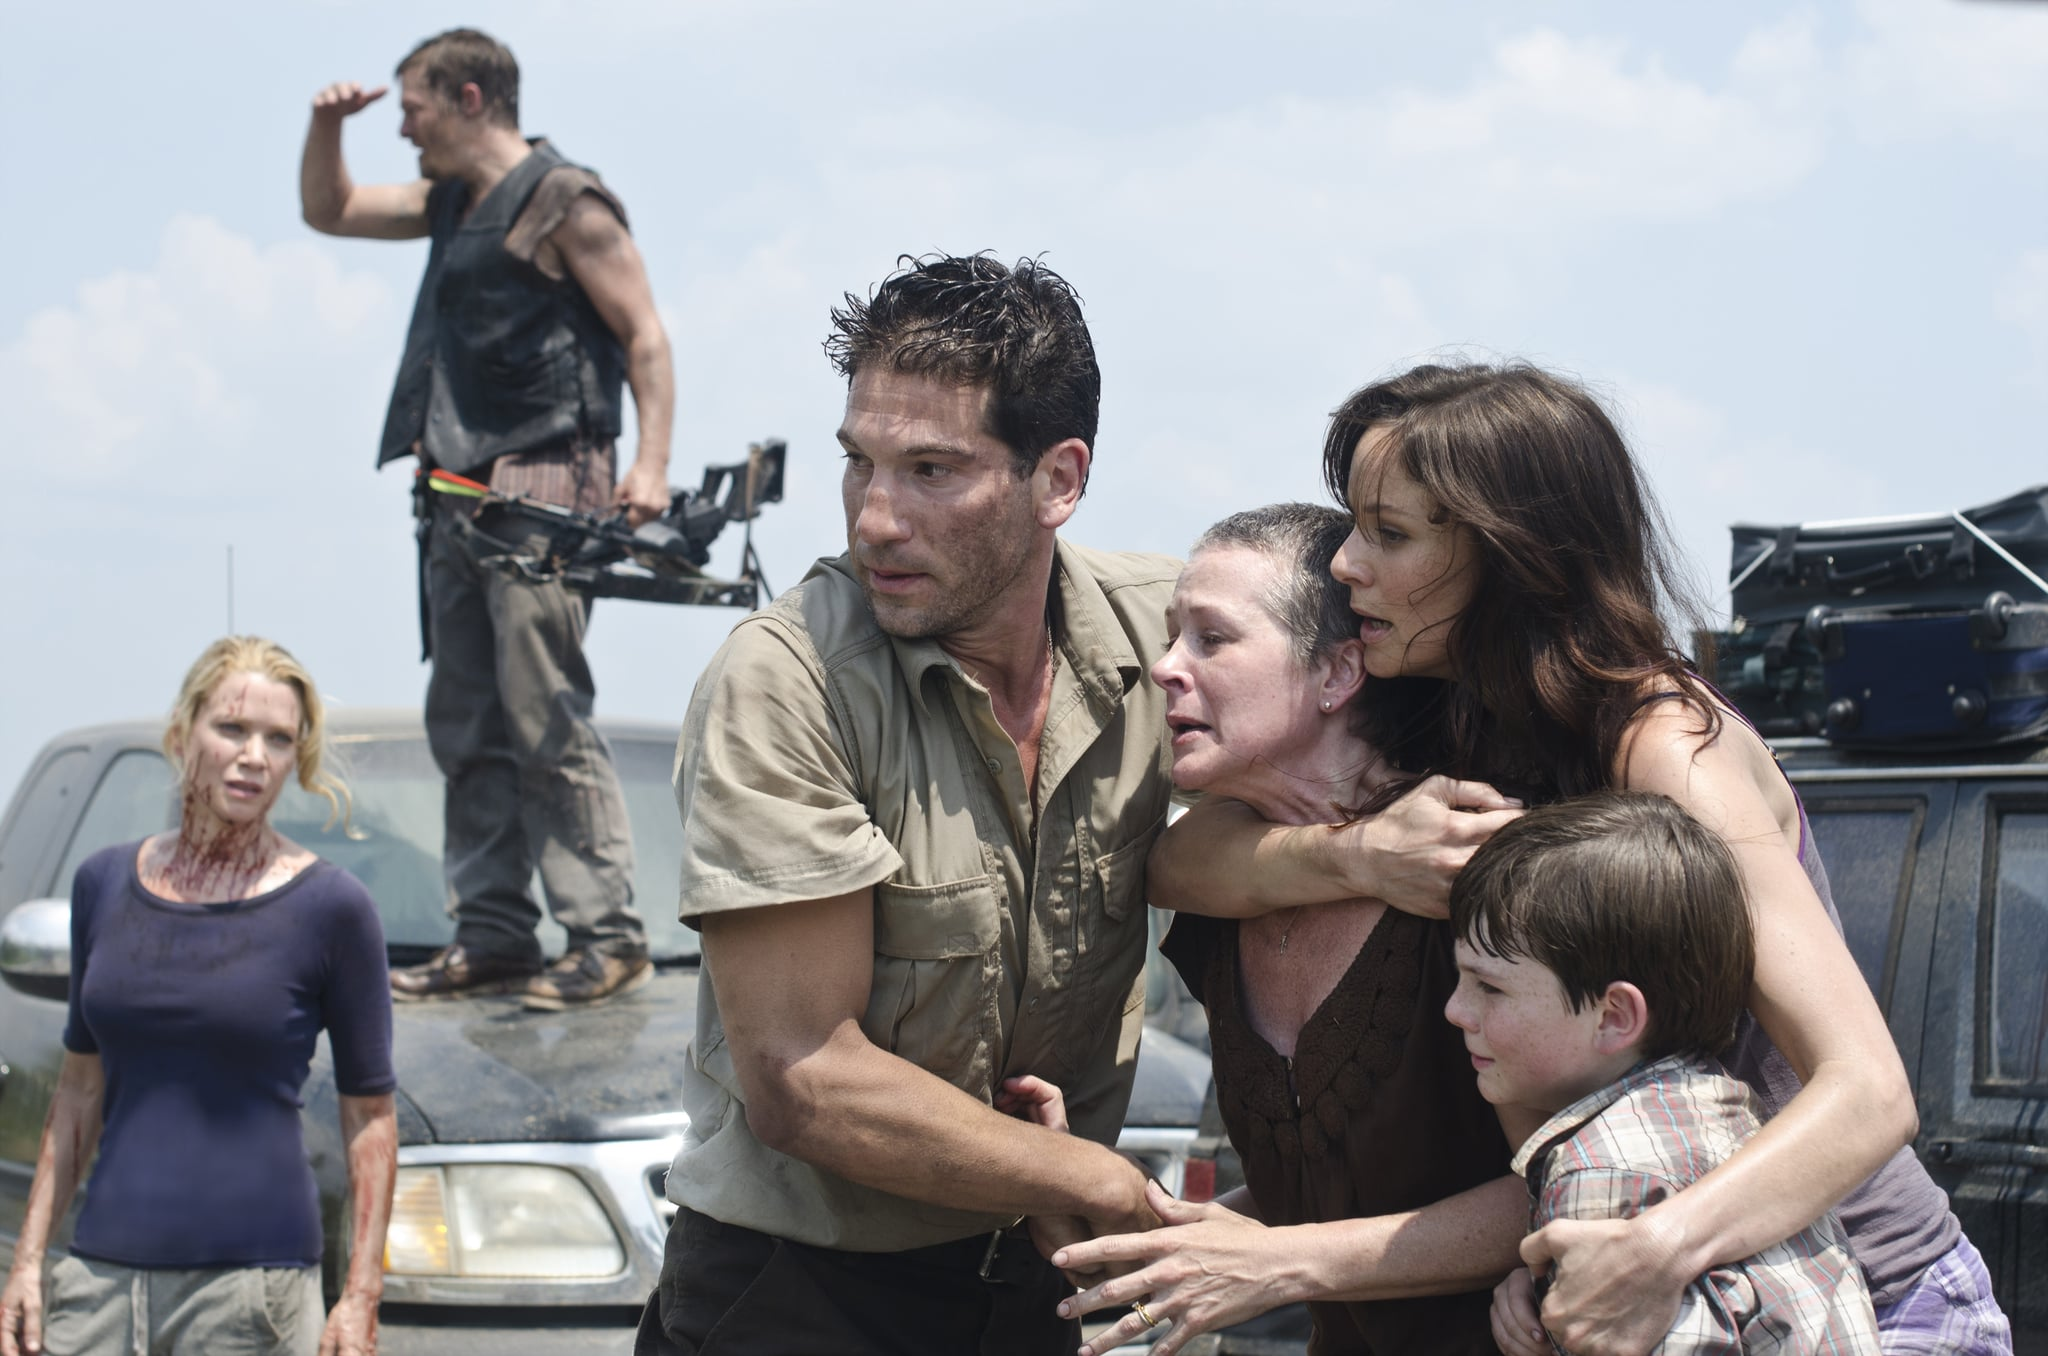 (L-R) Andrea (Laurie Holden), Daryl Dixon (Norman Reedus), Shane Walsh (Jon Bernthal), Carol (Melissa Suzanne McBride), Lori Grimes (Sarah Wayne Callies) and Carl Grimes (Chandler Riggs) - The Walking Dead - Season 2, Episode 1 - Photo Credit: Gene Page/AMC - TWD_201_0608_4665rt